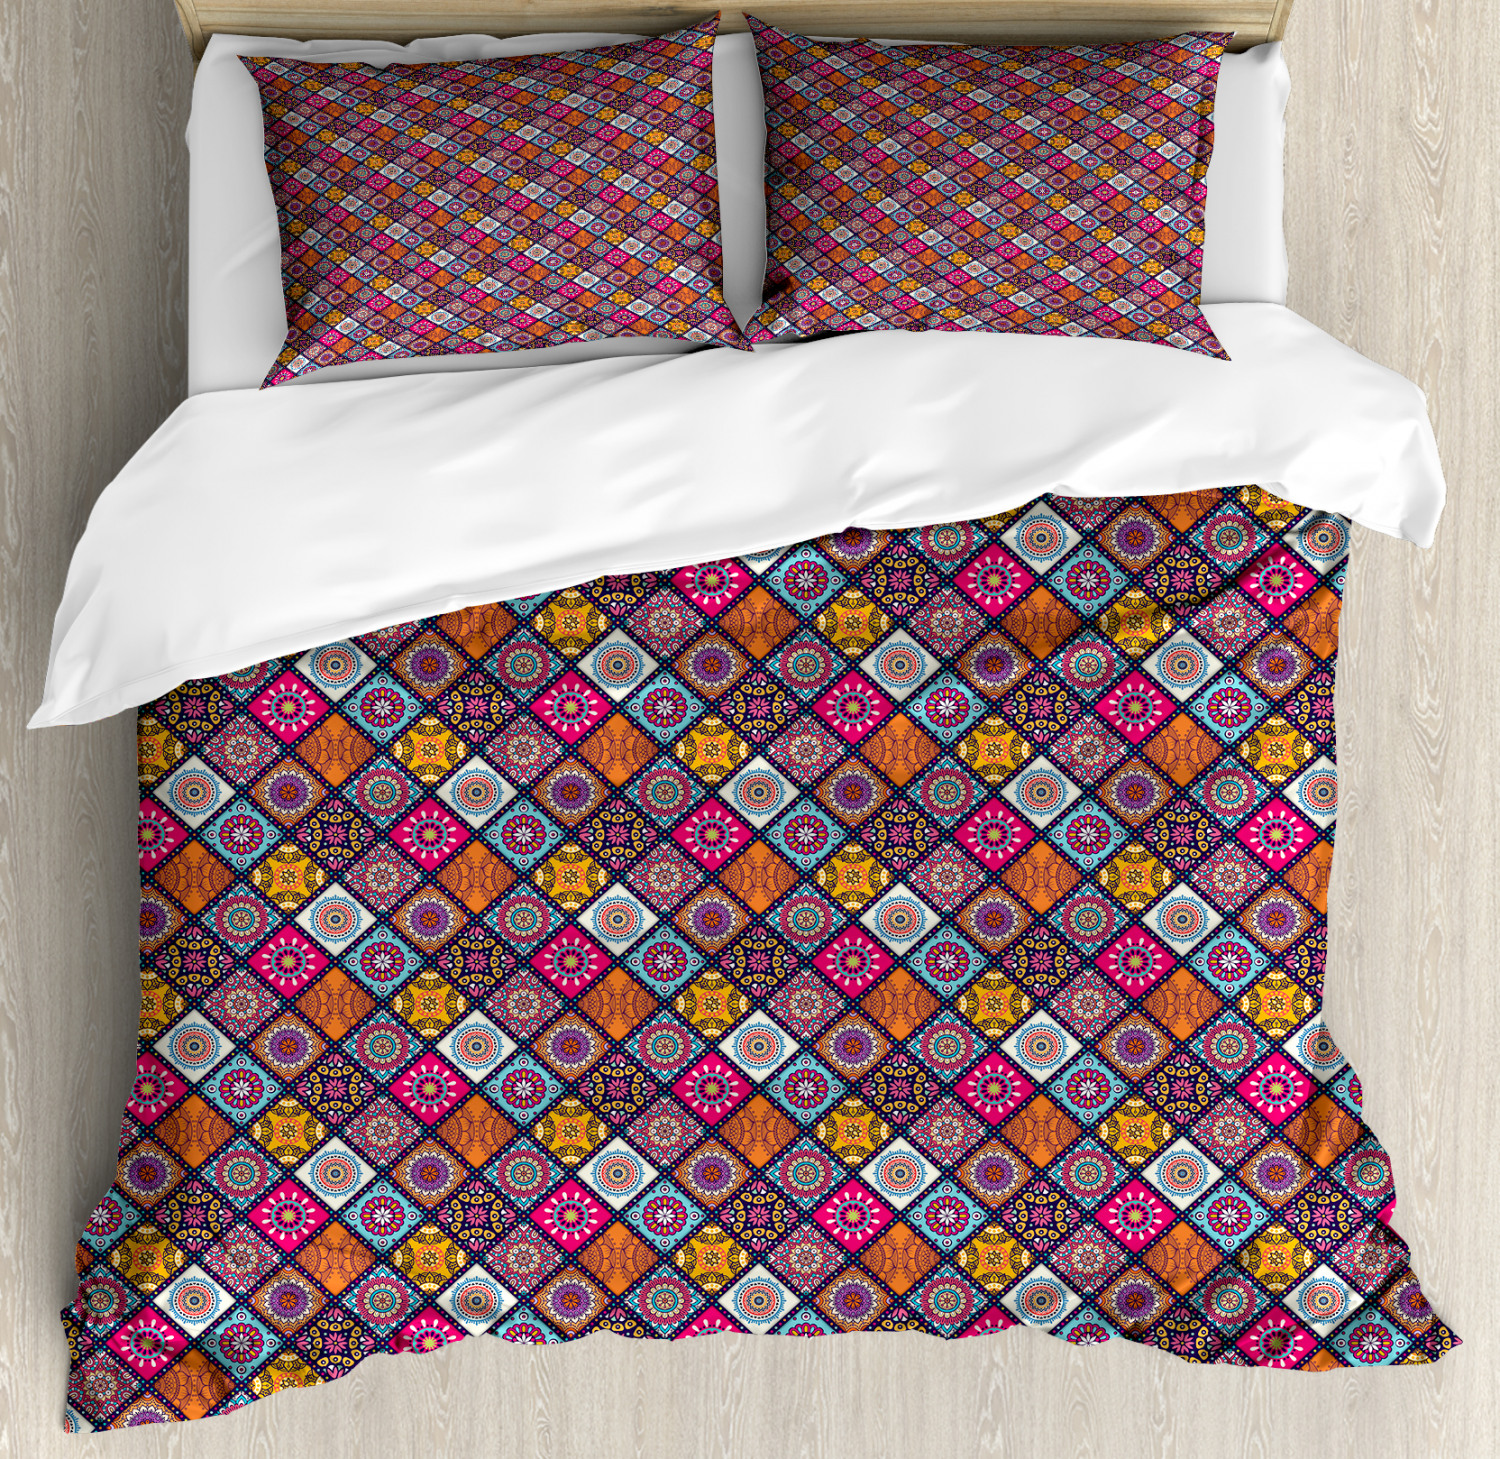 Moroccan Duvet Cover Set with Pillow Shams Folkloric Boho Flowers Print